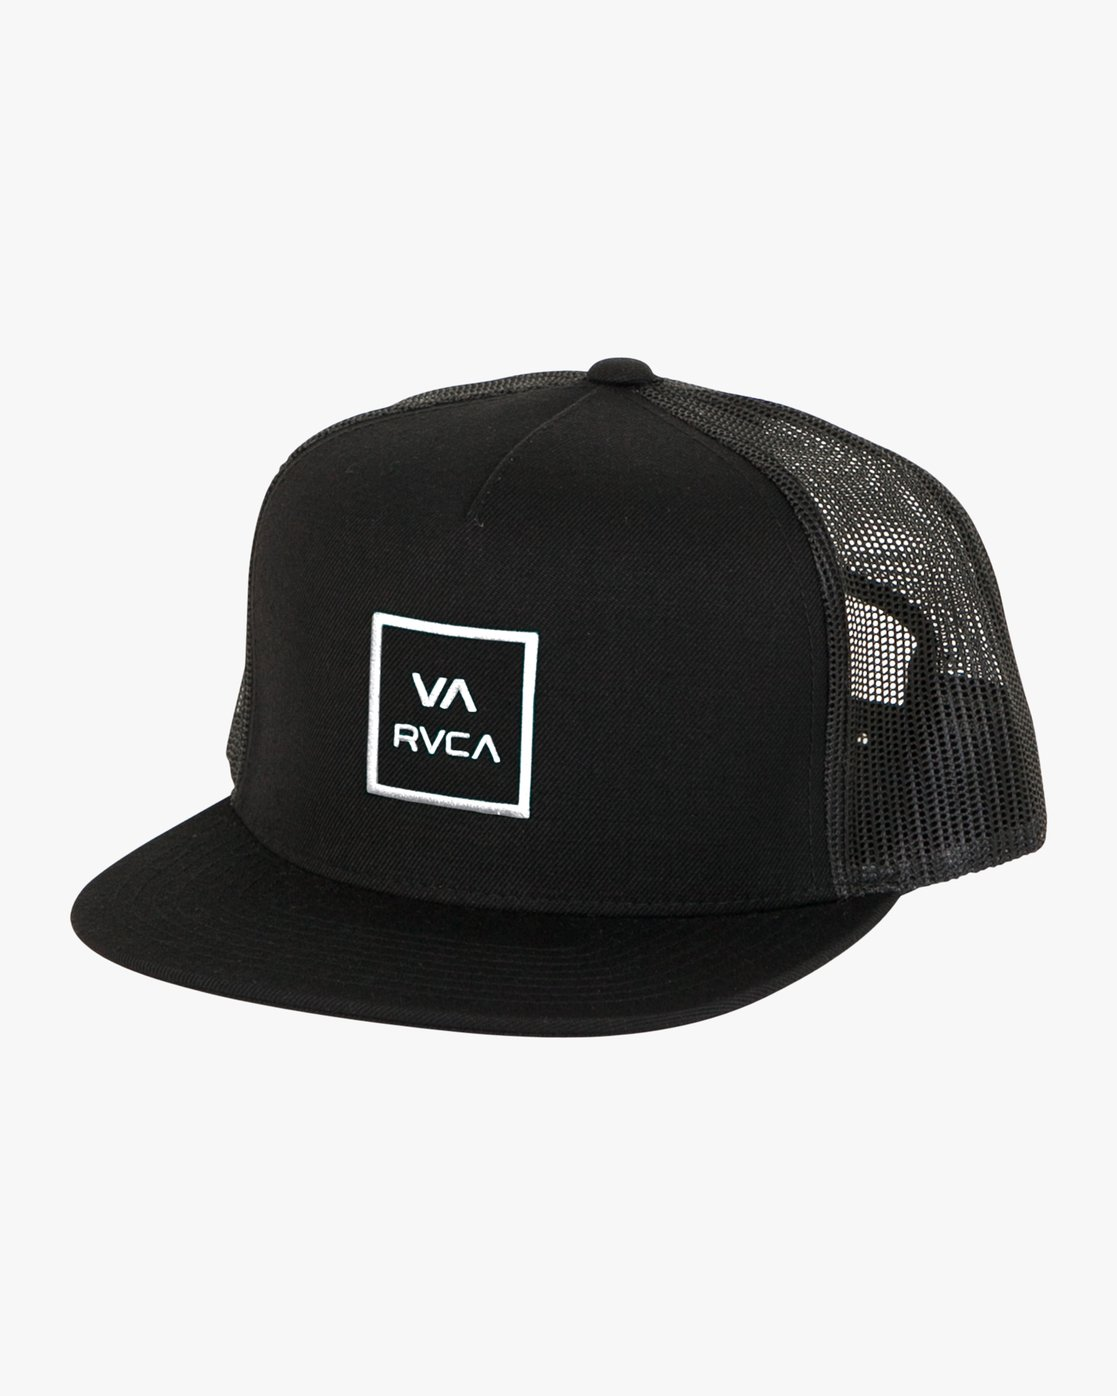 0 VA All The Way Trucker Hat III Black MAAHWVWY RVCA